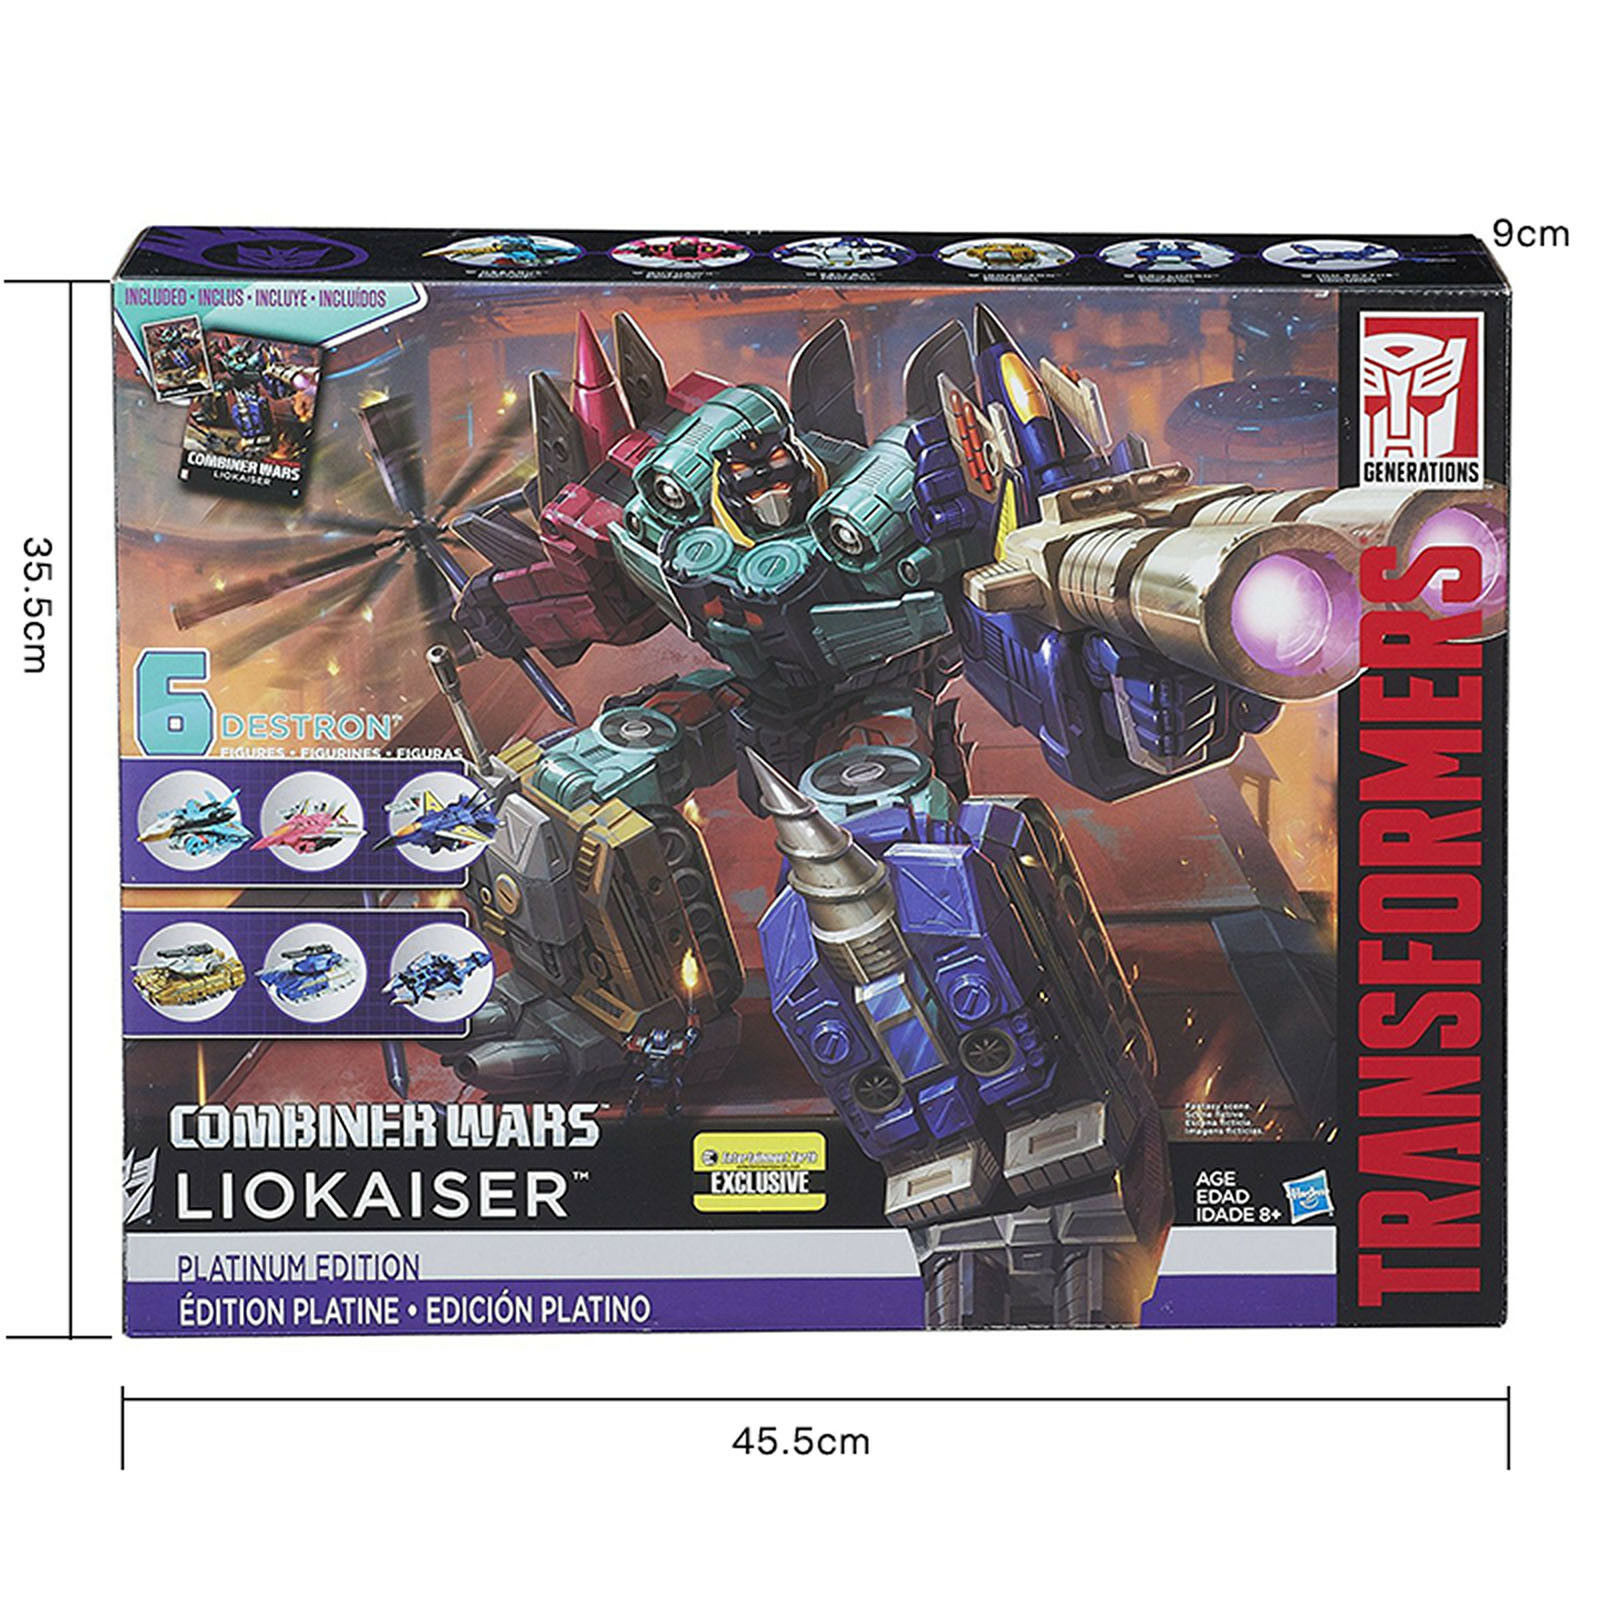 Transformers Platinum Edition Combiner Wars Generations LIOKAISER Action Robot